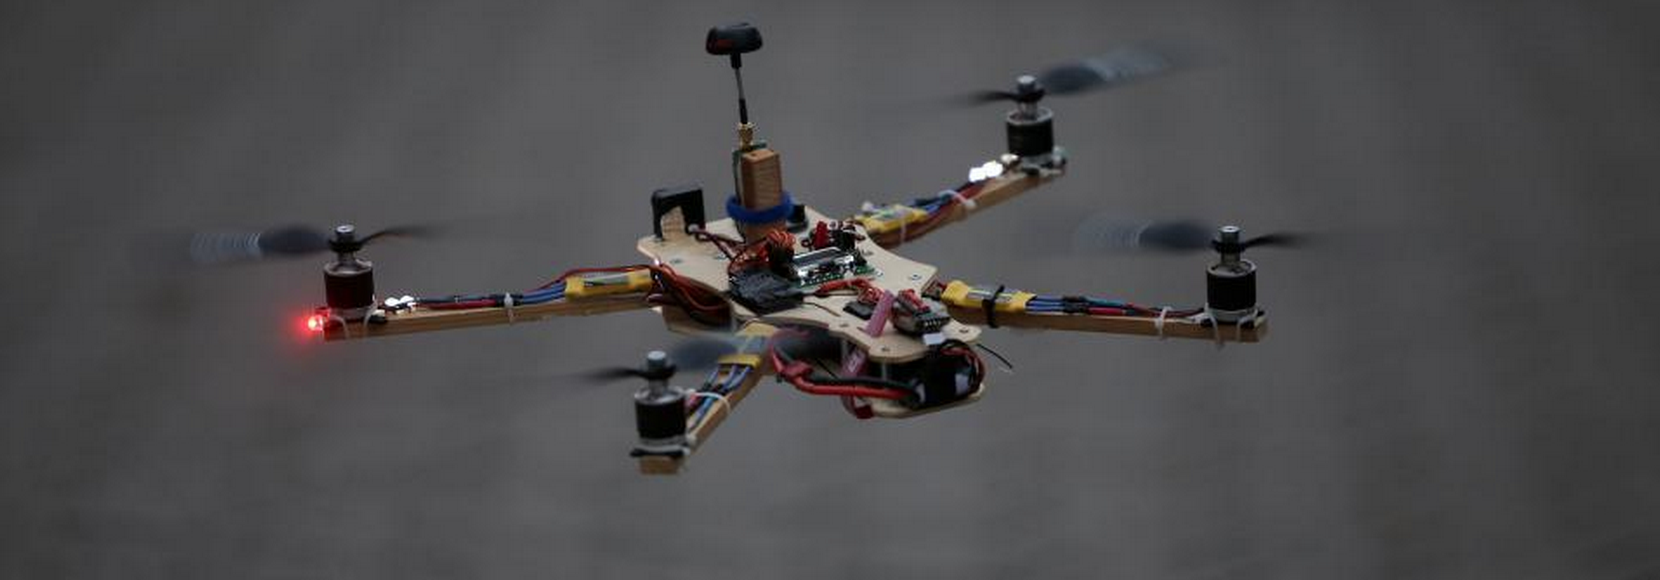 A self made quadcopter in search for the right and safe spot to fly